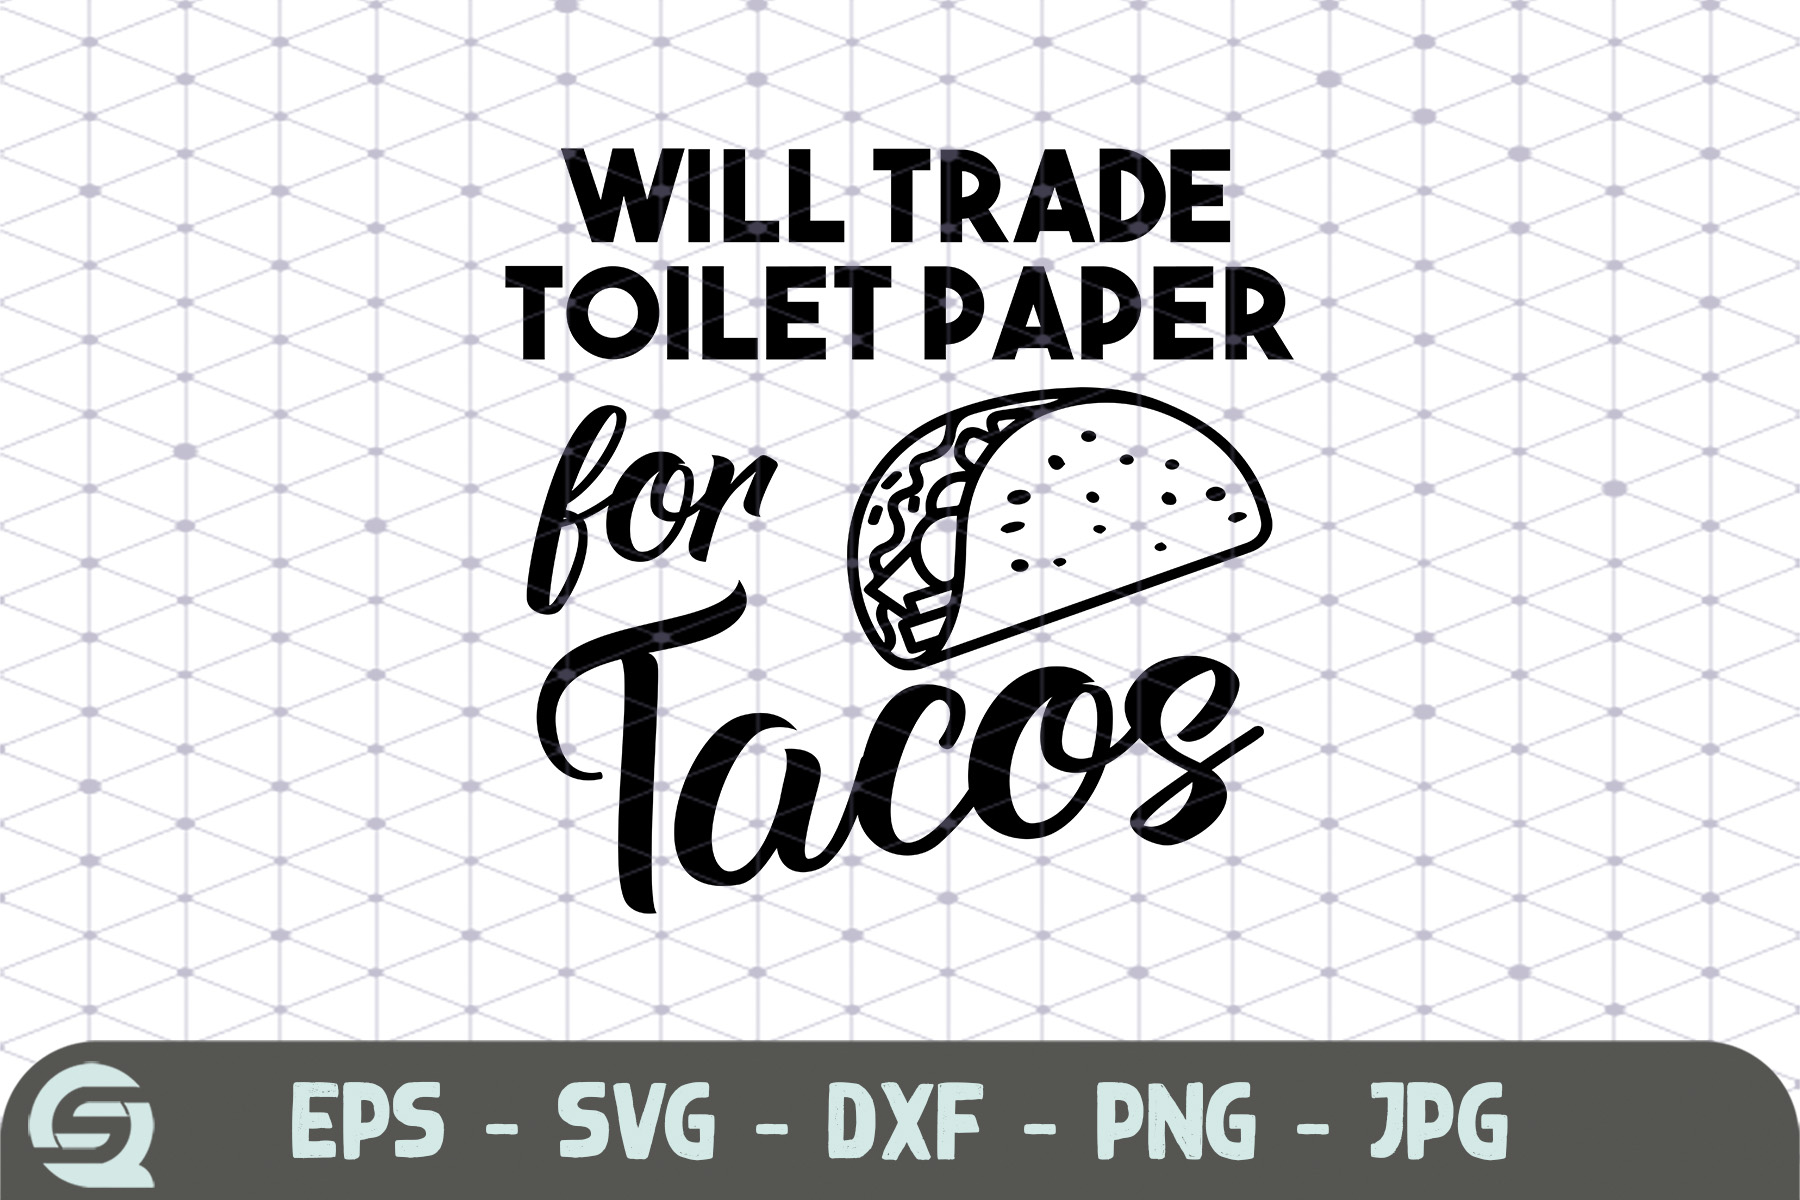 Download Free Will Trade Toilet Paper For Tacos Graphic By Crafty Files for Cricut Explore, Silhouette and other cutting machines.